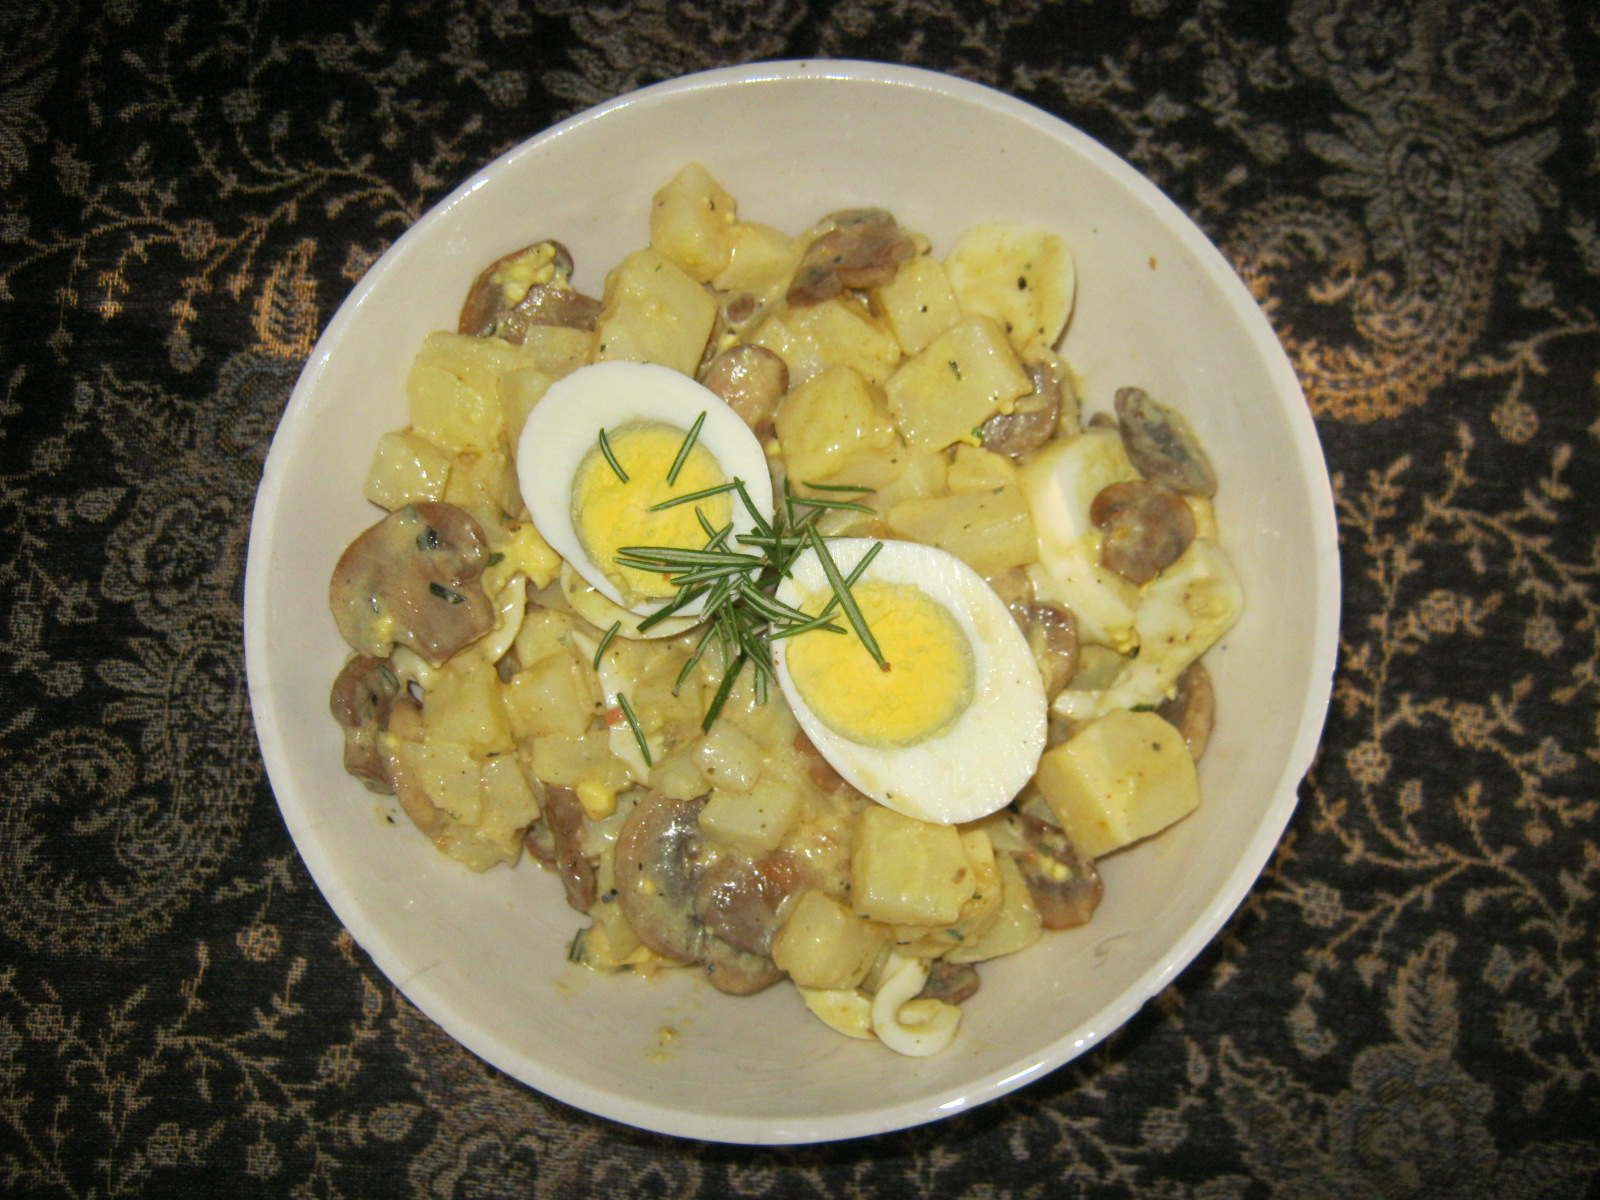 Mama's famous potato salad